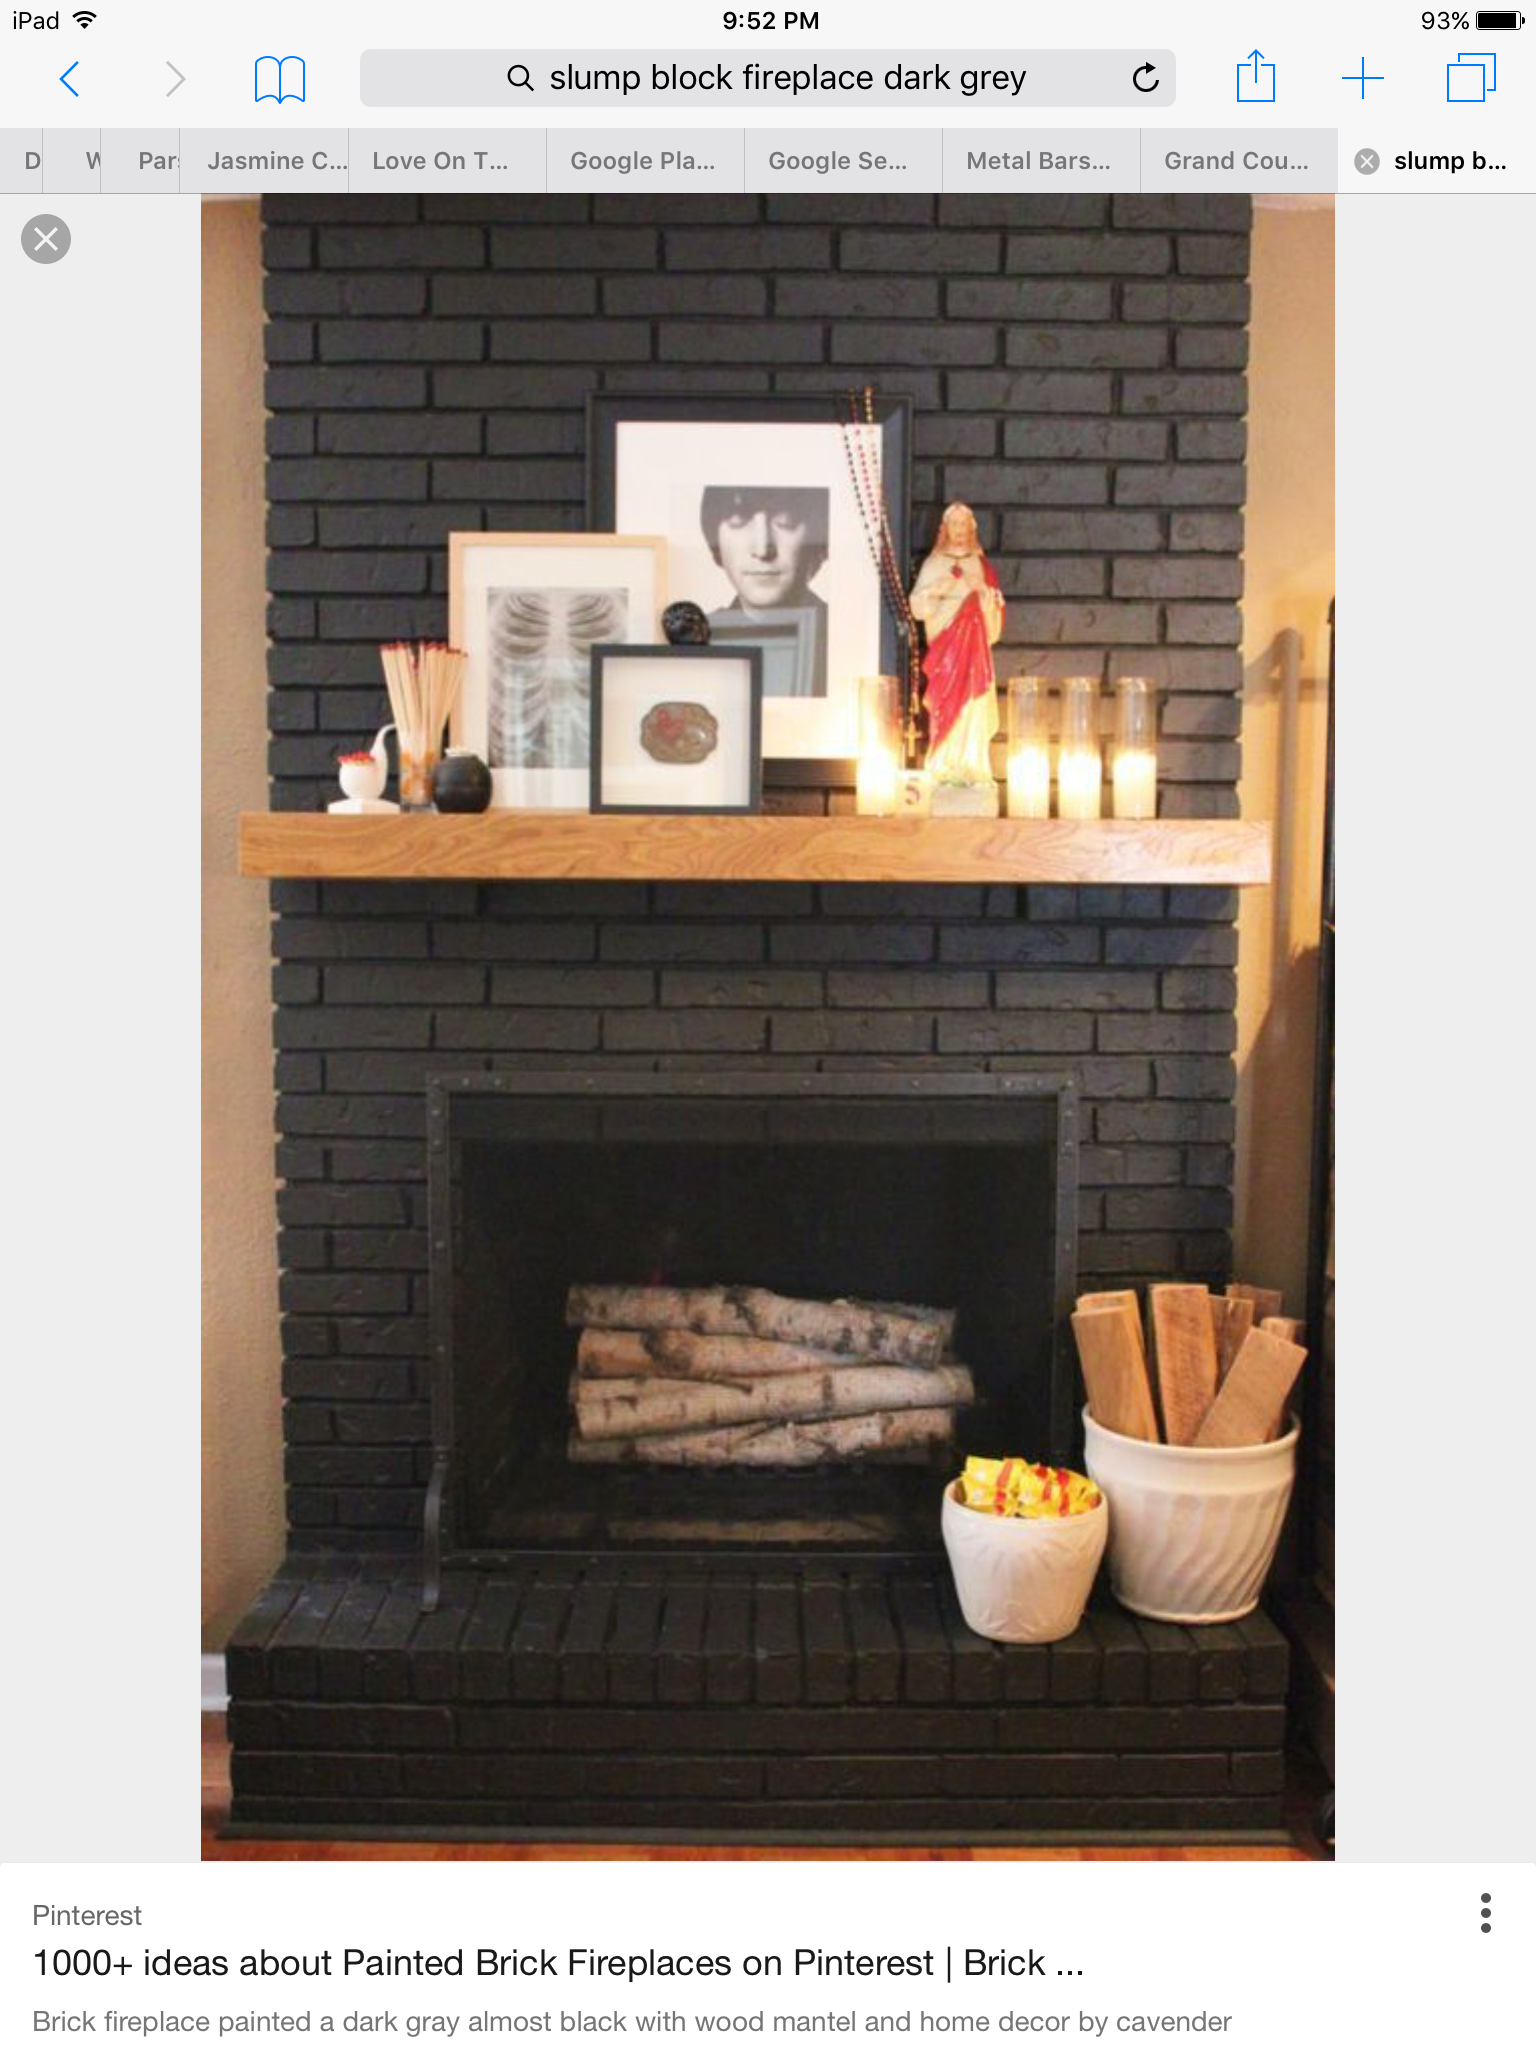 Grey Slump Block Fireplace Painted Brick Fireplaces